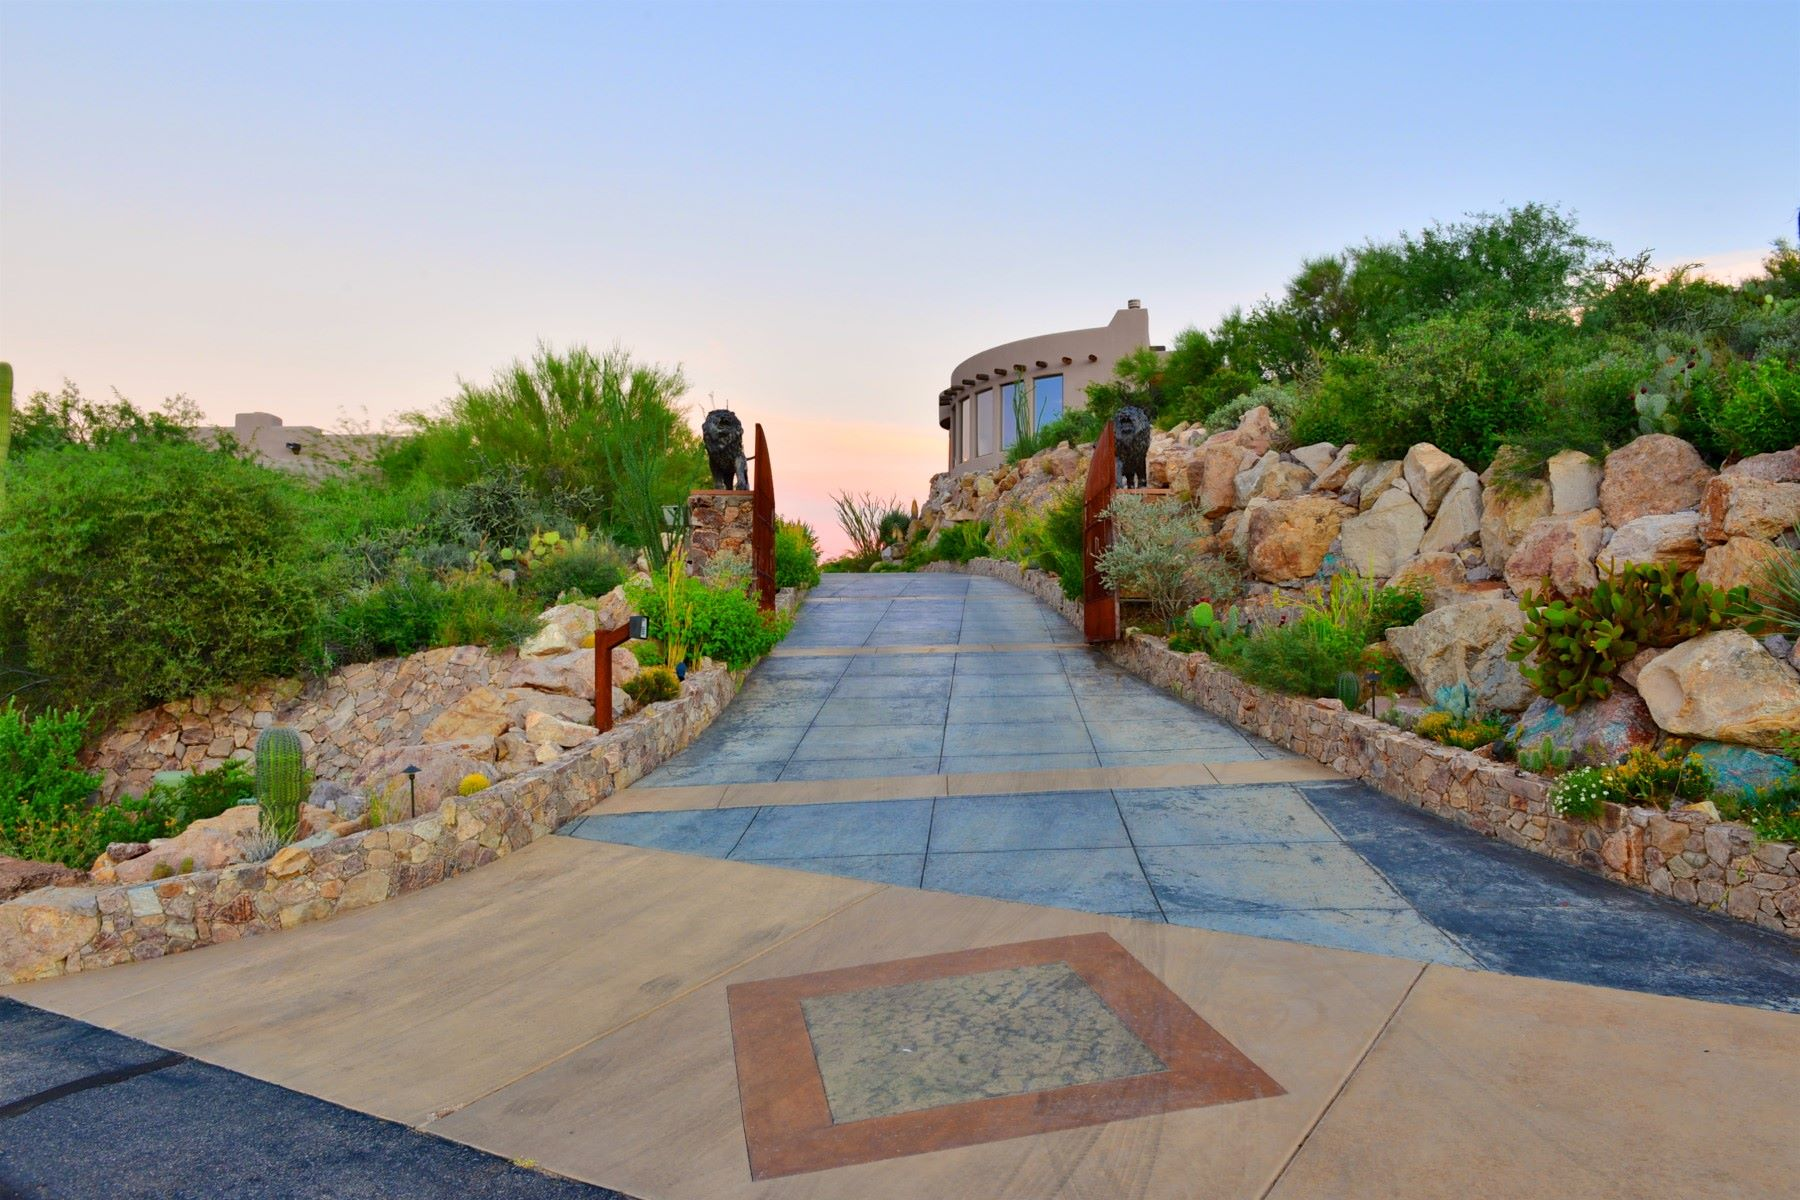 Villa per Vendita alle ore One of the City's Most Private and Meticulously Built Home 5153 W Saguaro Cliffs Drive, Tucson, Arizona, 85745 Stati Uniti